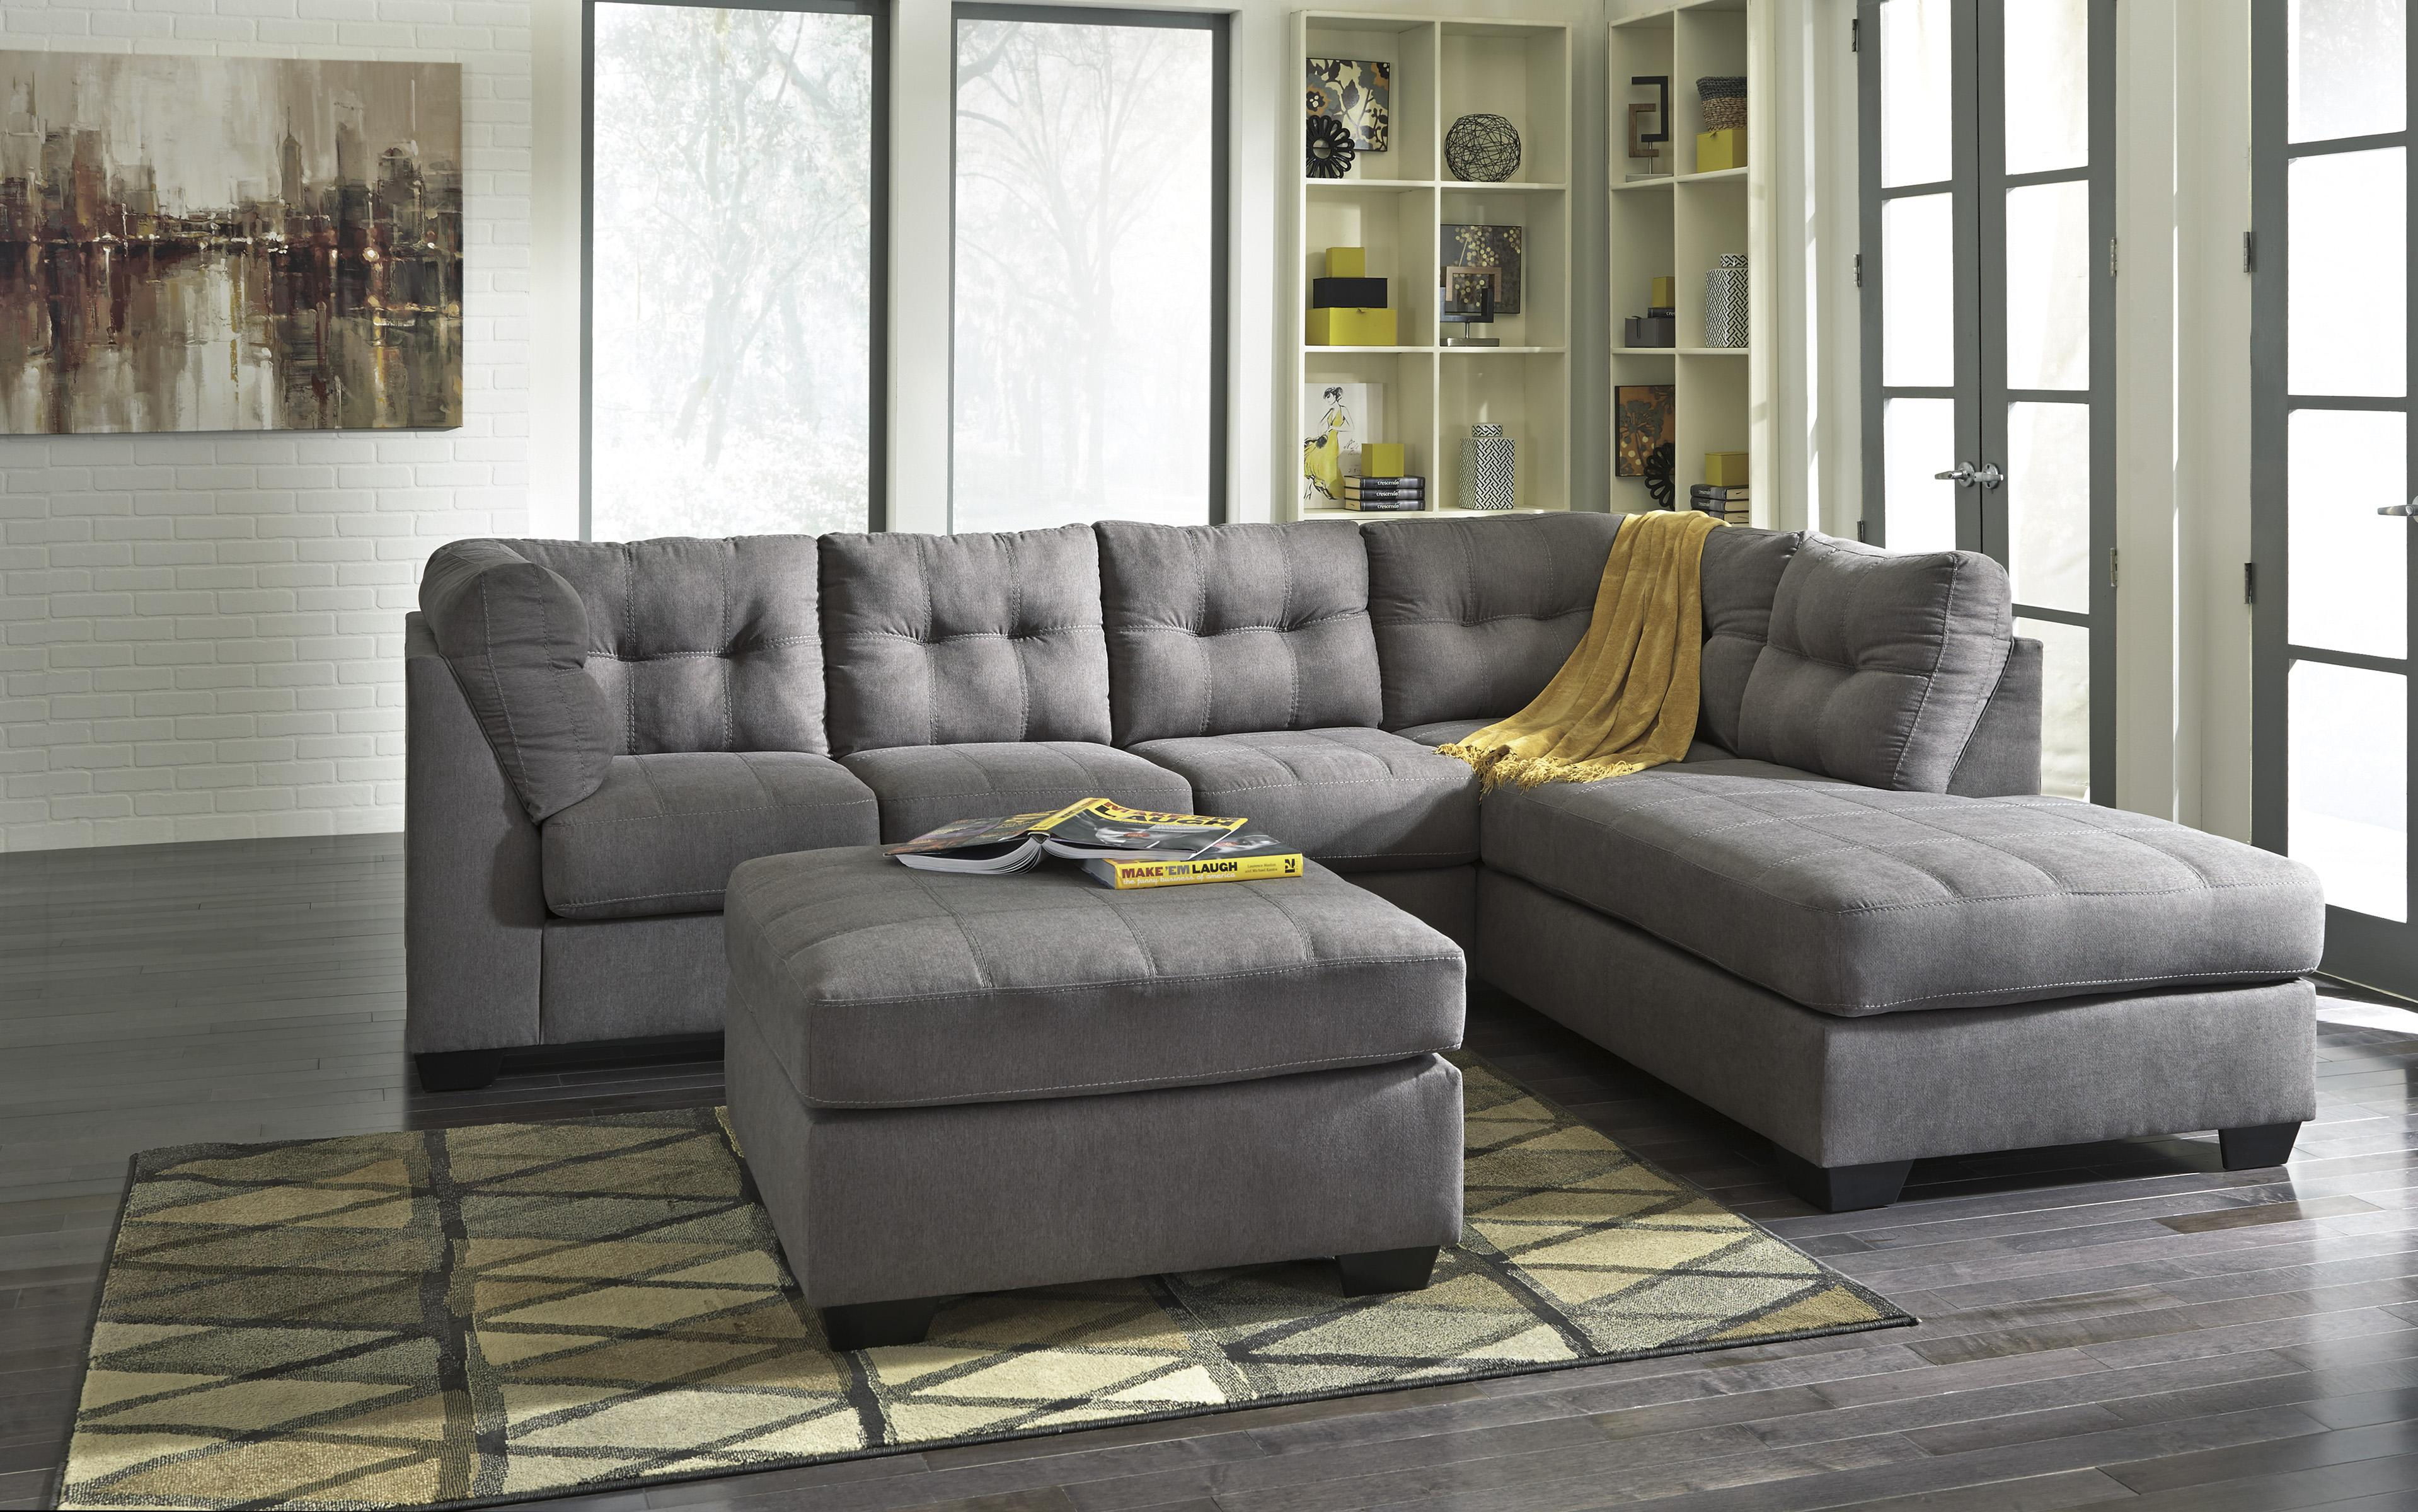 Benchcraft Maier - Charcoal Stationary Living Room Group - Item Number: 45200 Living Room Group 1